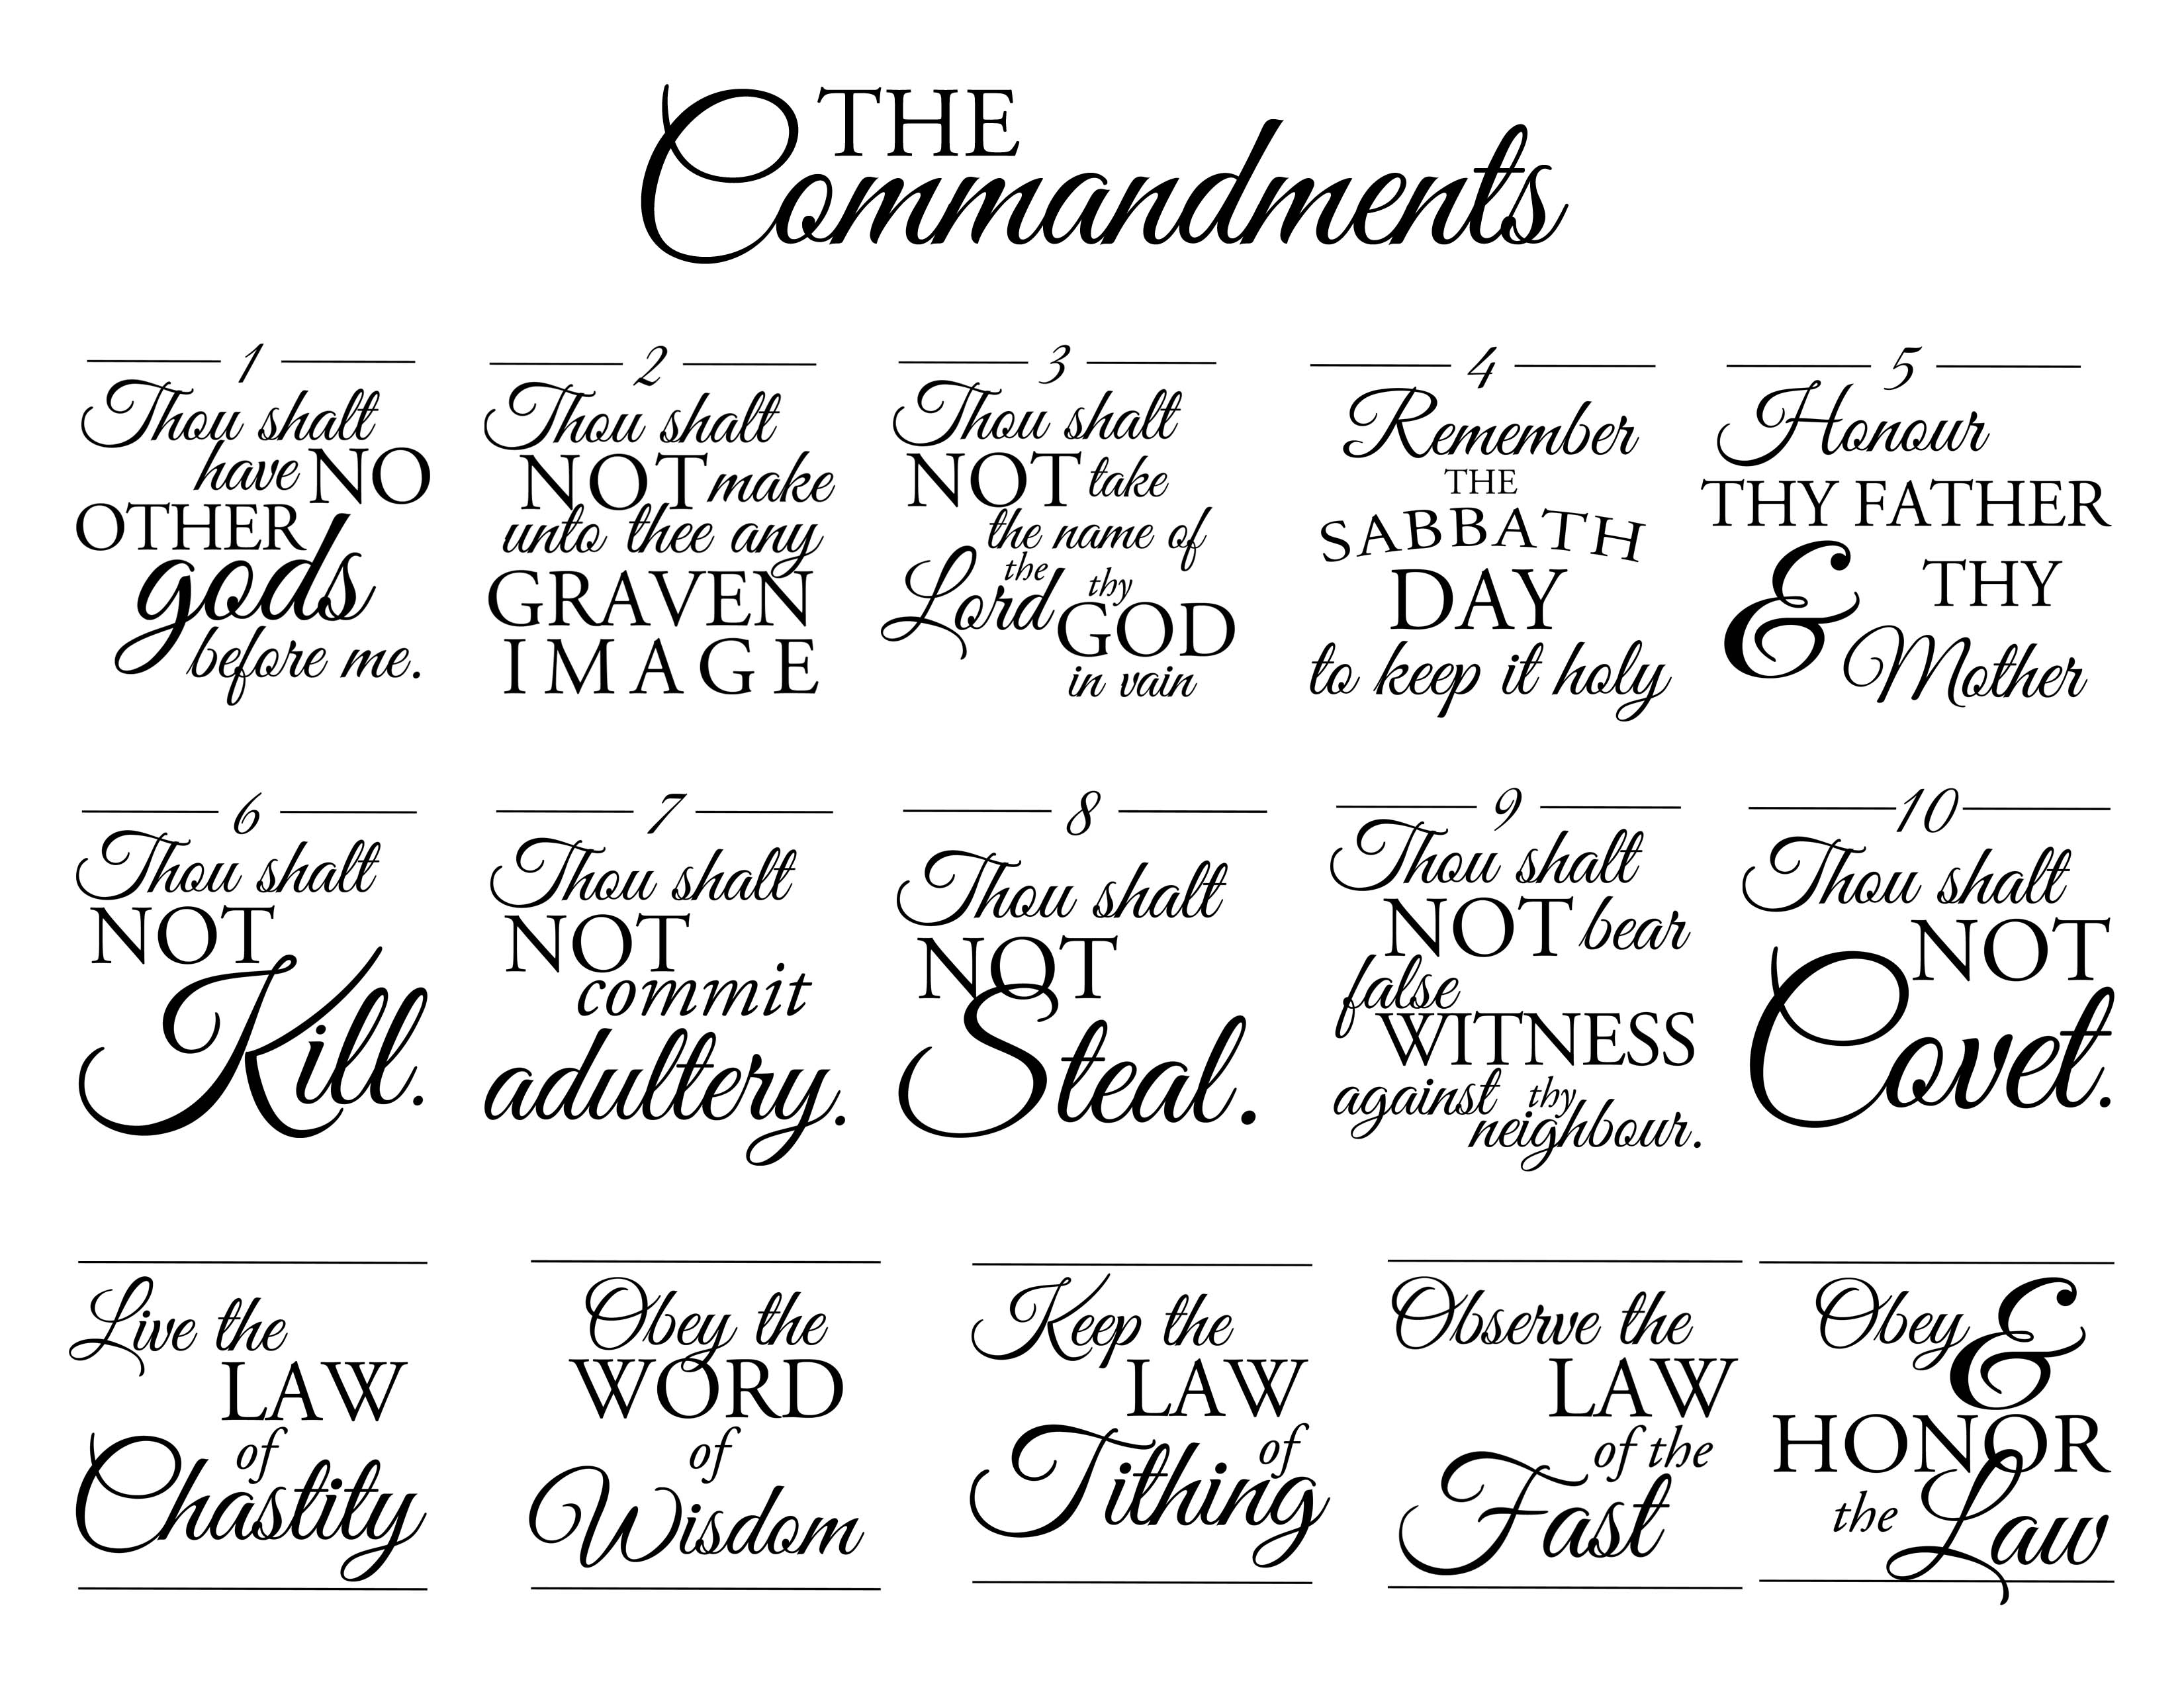 15 Best Images Of 10 Commandments Worksheet